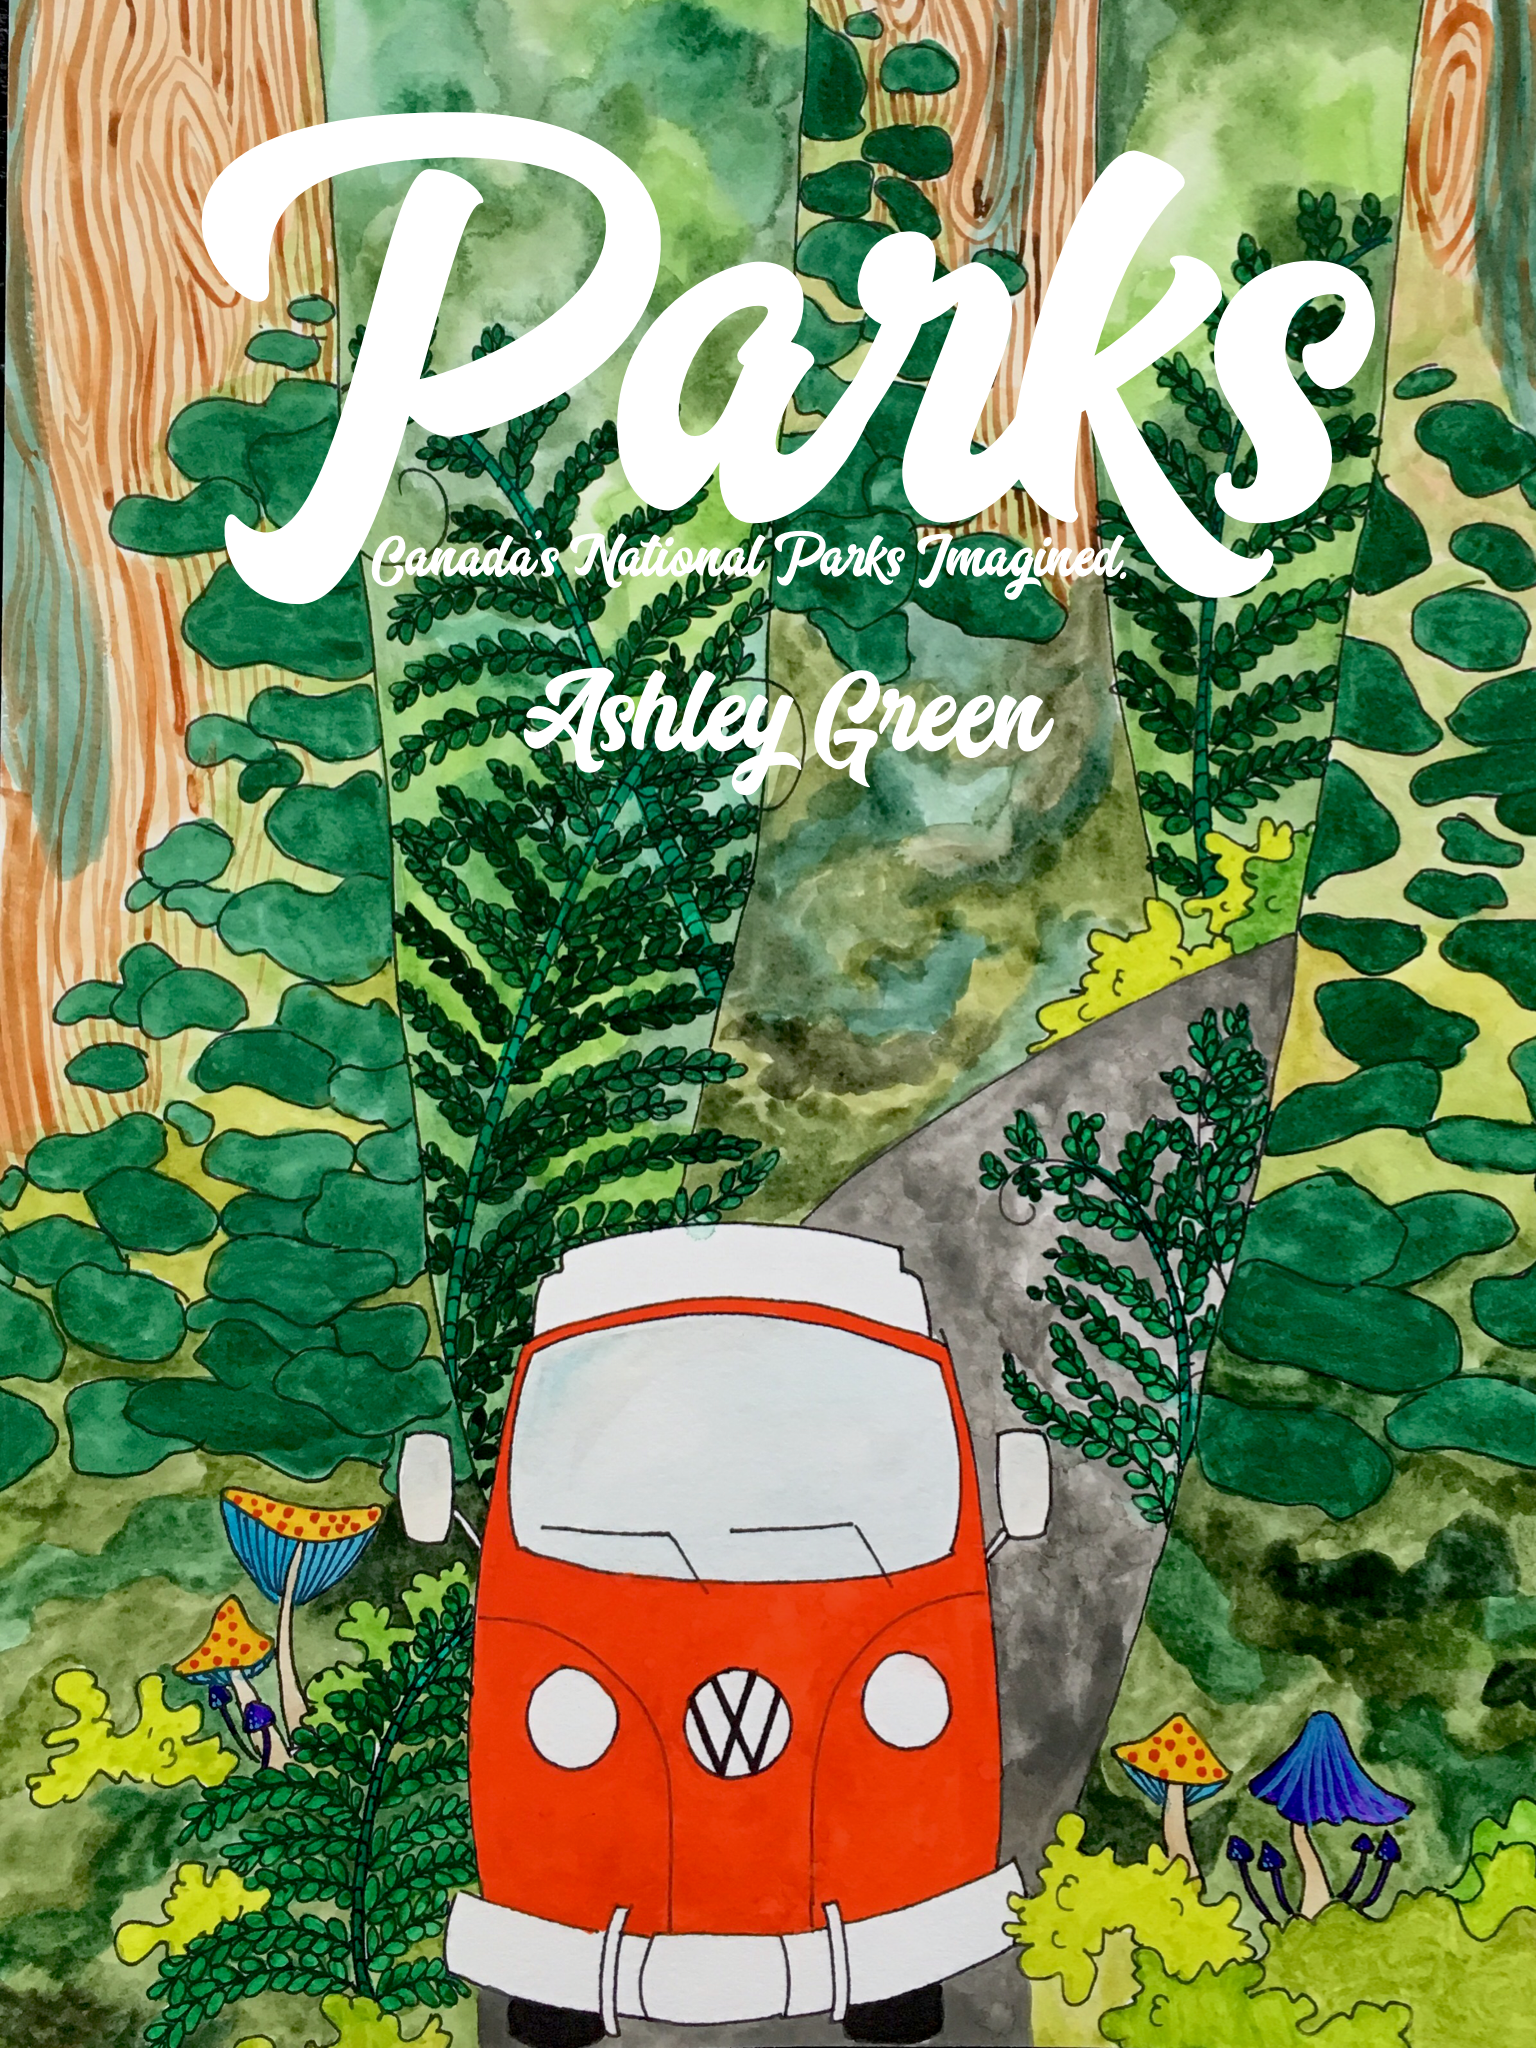 children and adults alike will love this new picture book which includes vibrant and whimsical illustrations of canada's national parks and one toally awesome hippie van. - PARKS Canada's National Parks Imagined is a limited edition book series. Get your copy now before disappear!